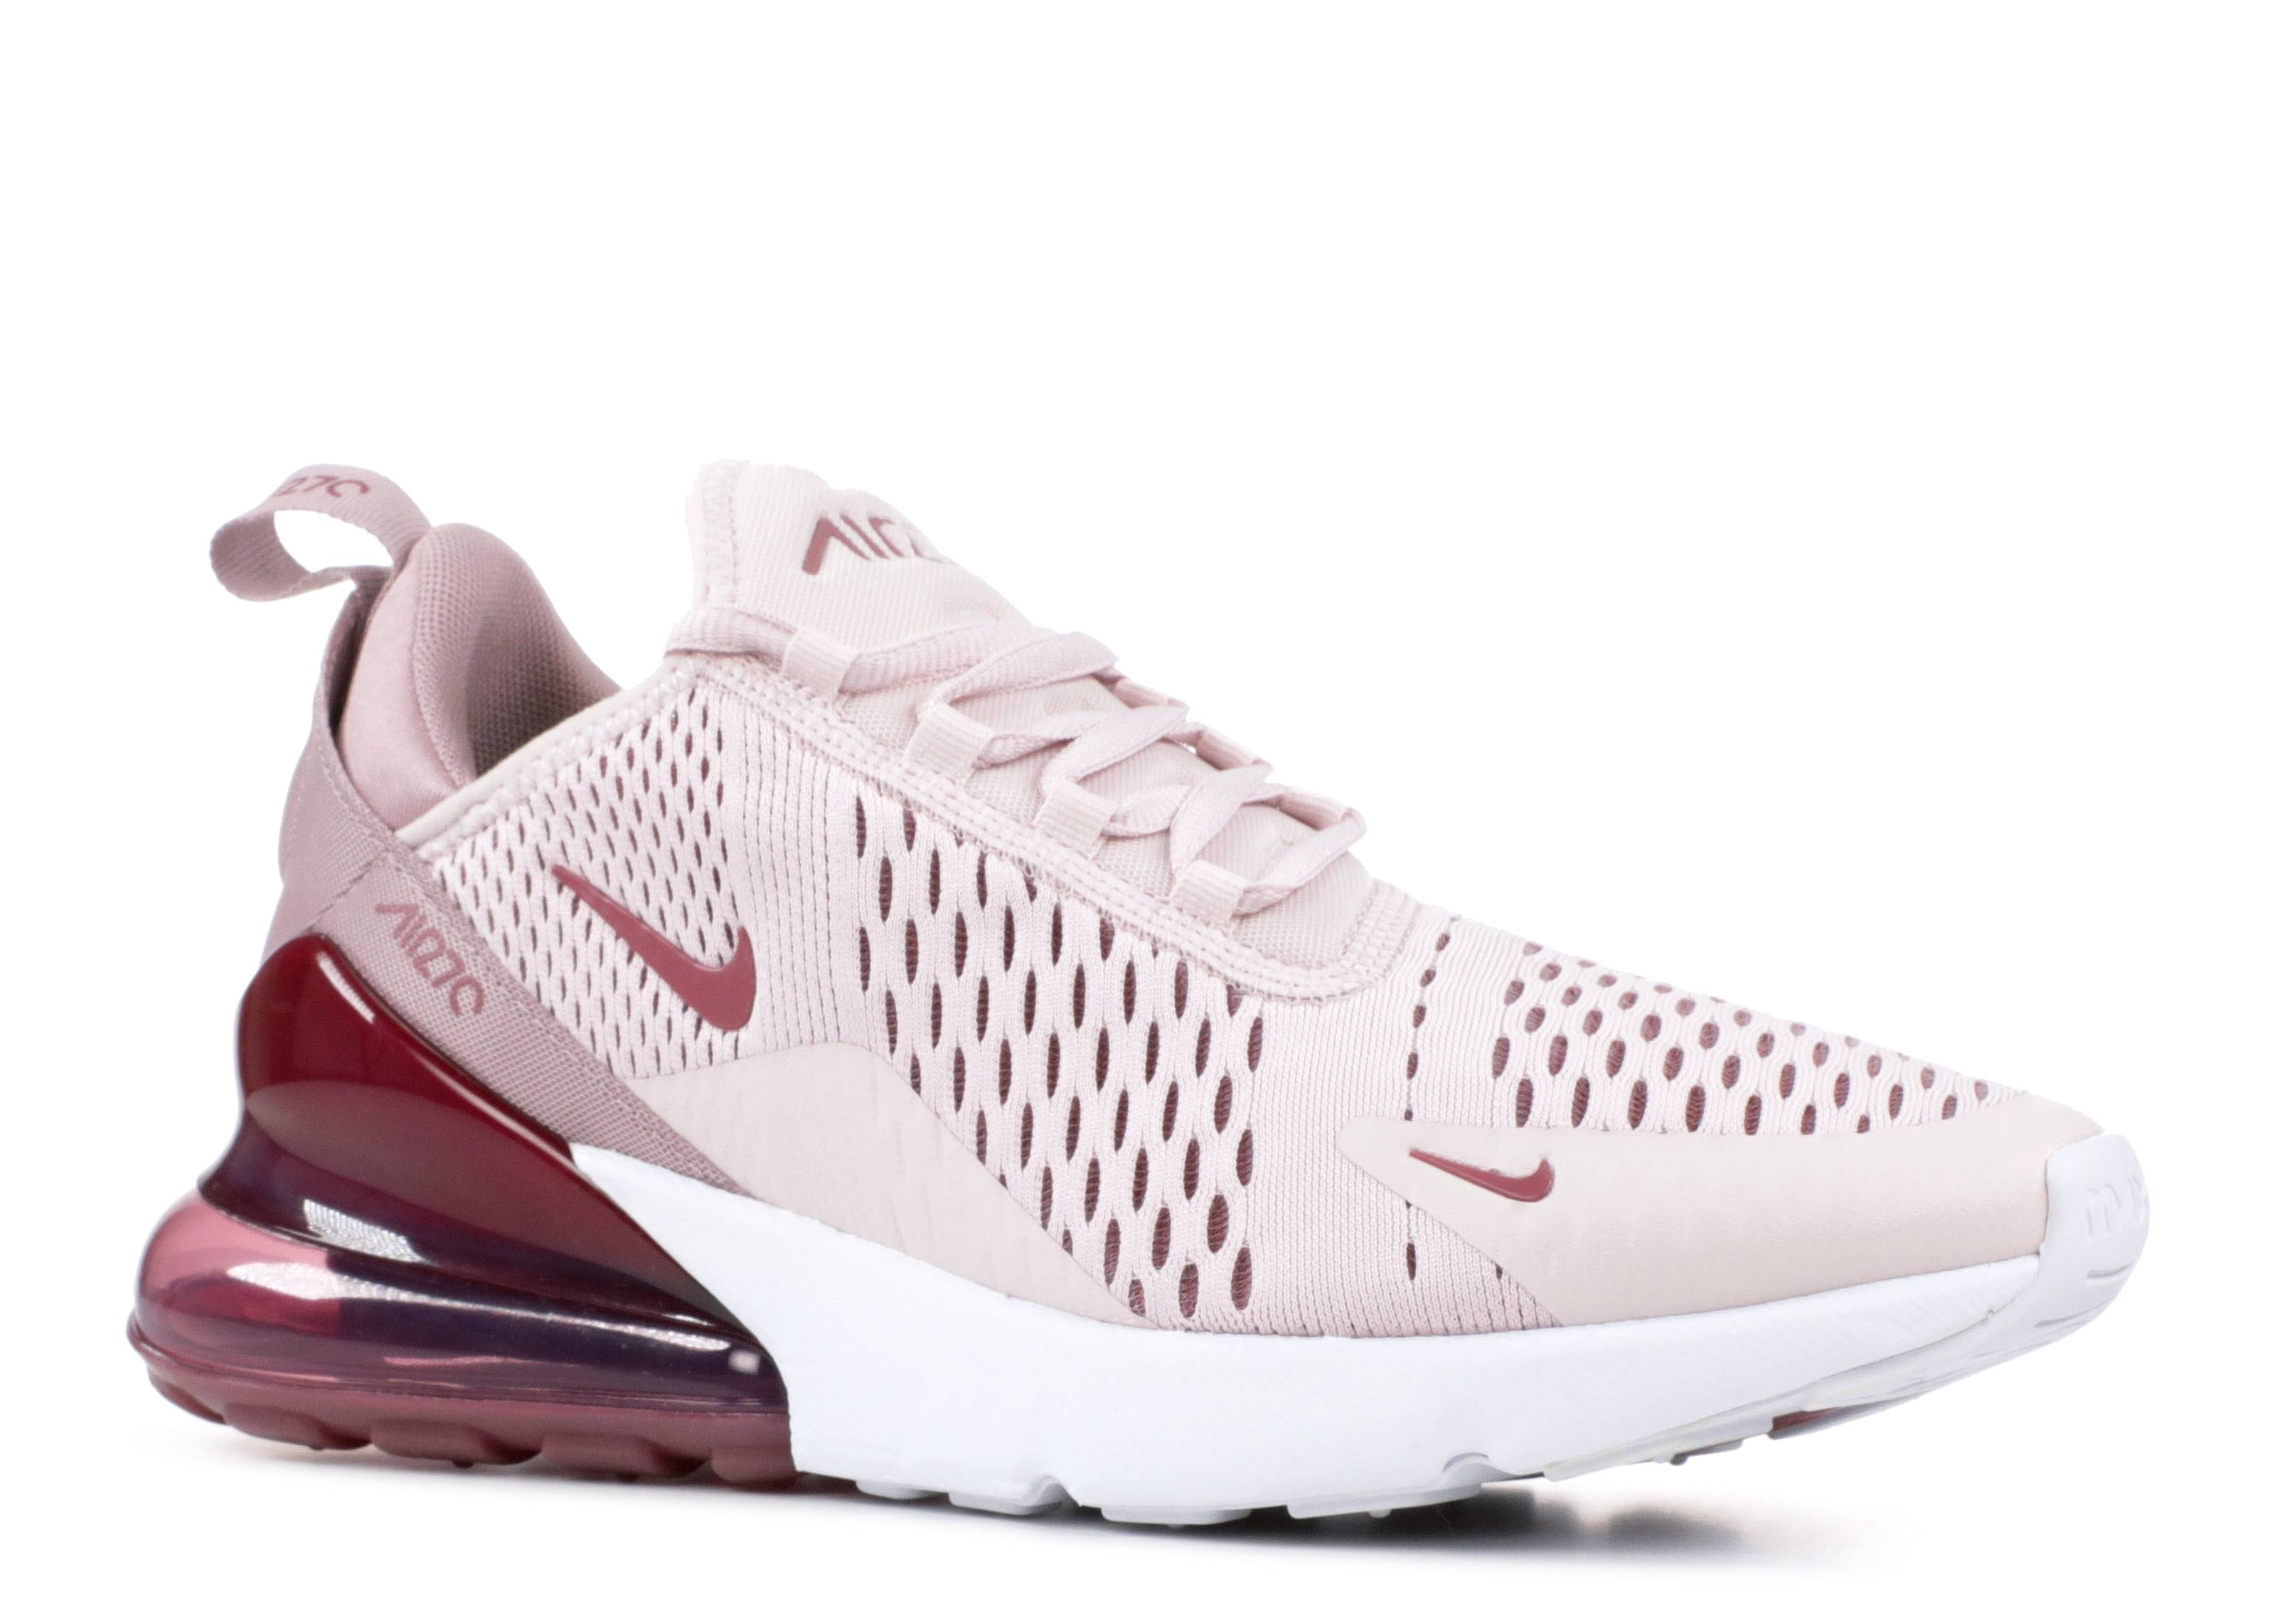 new style c6d1f 8a4a2 Wmns Air Max 270 'Barely Rose'